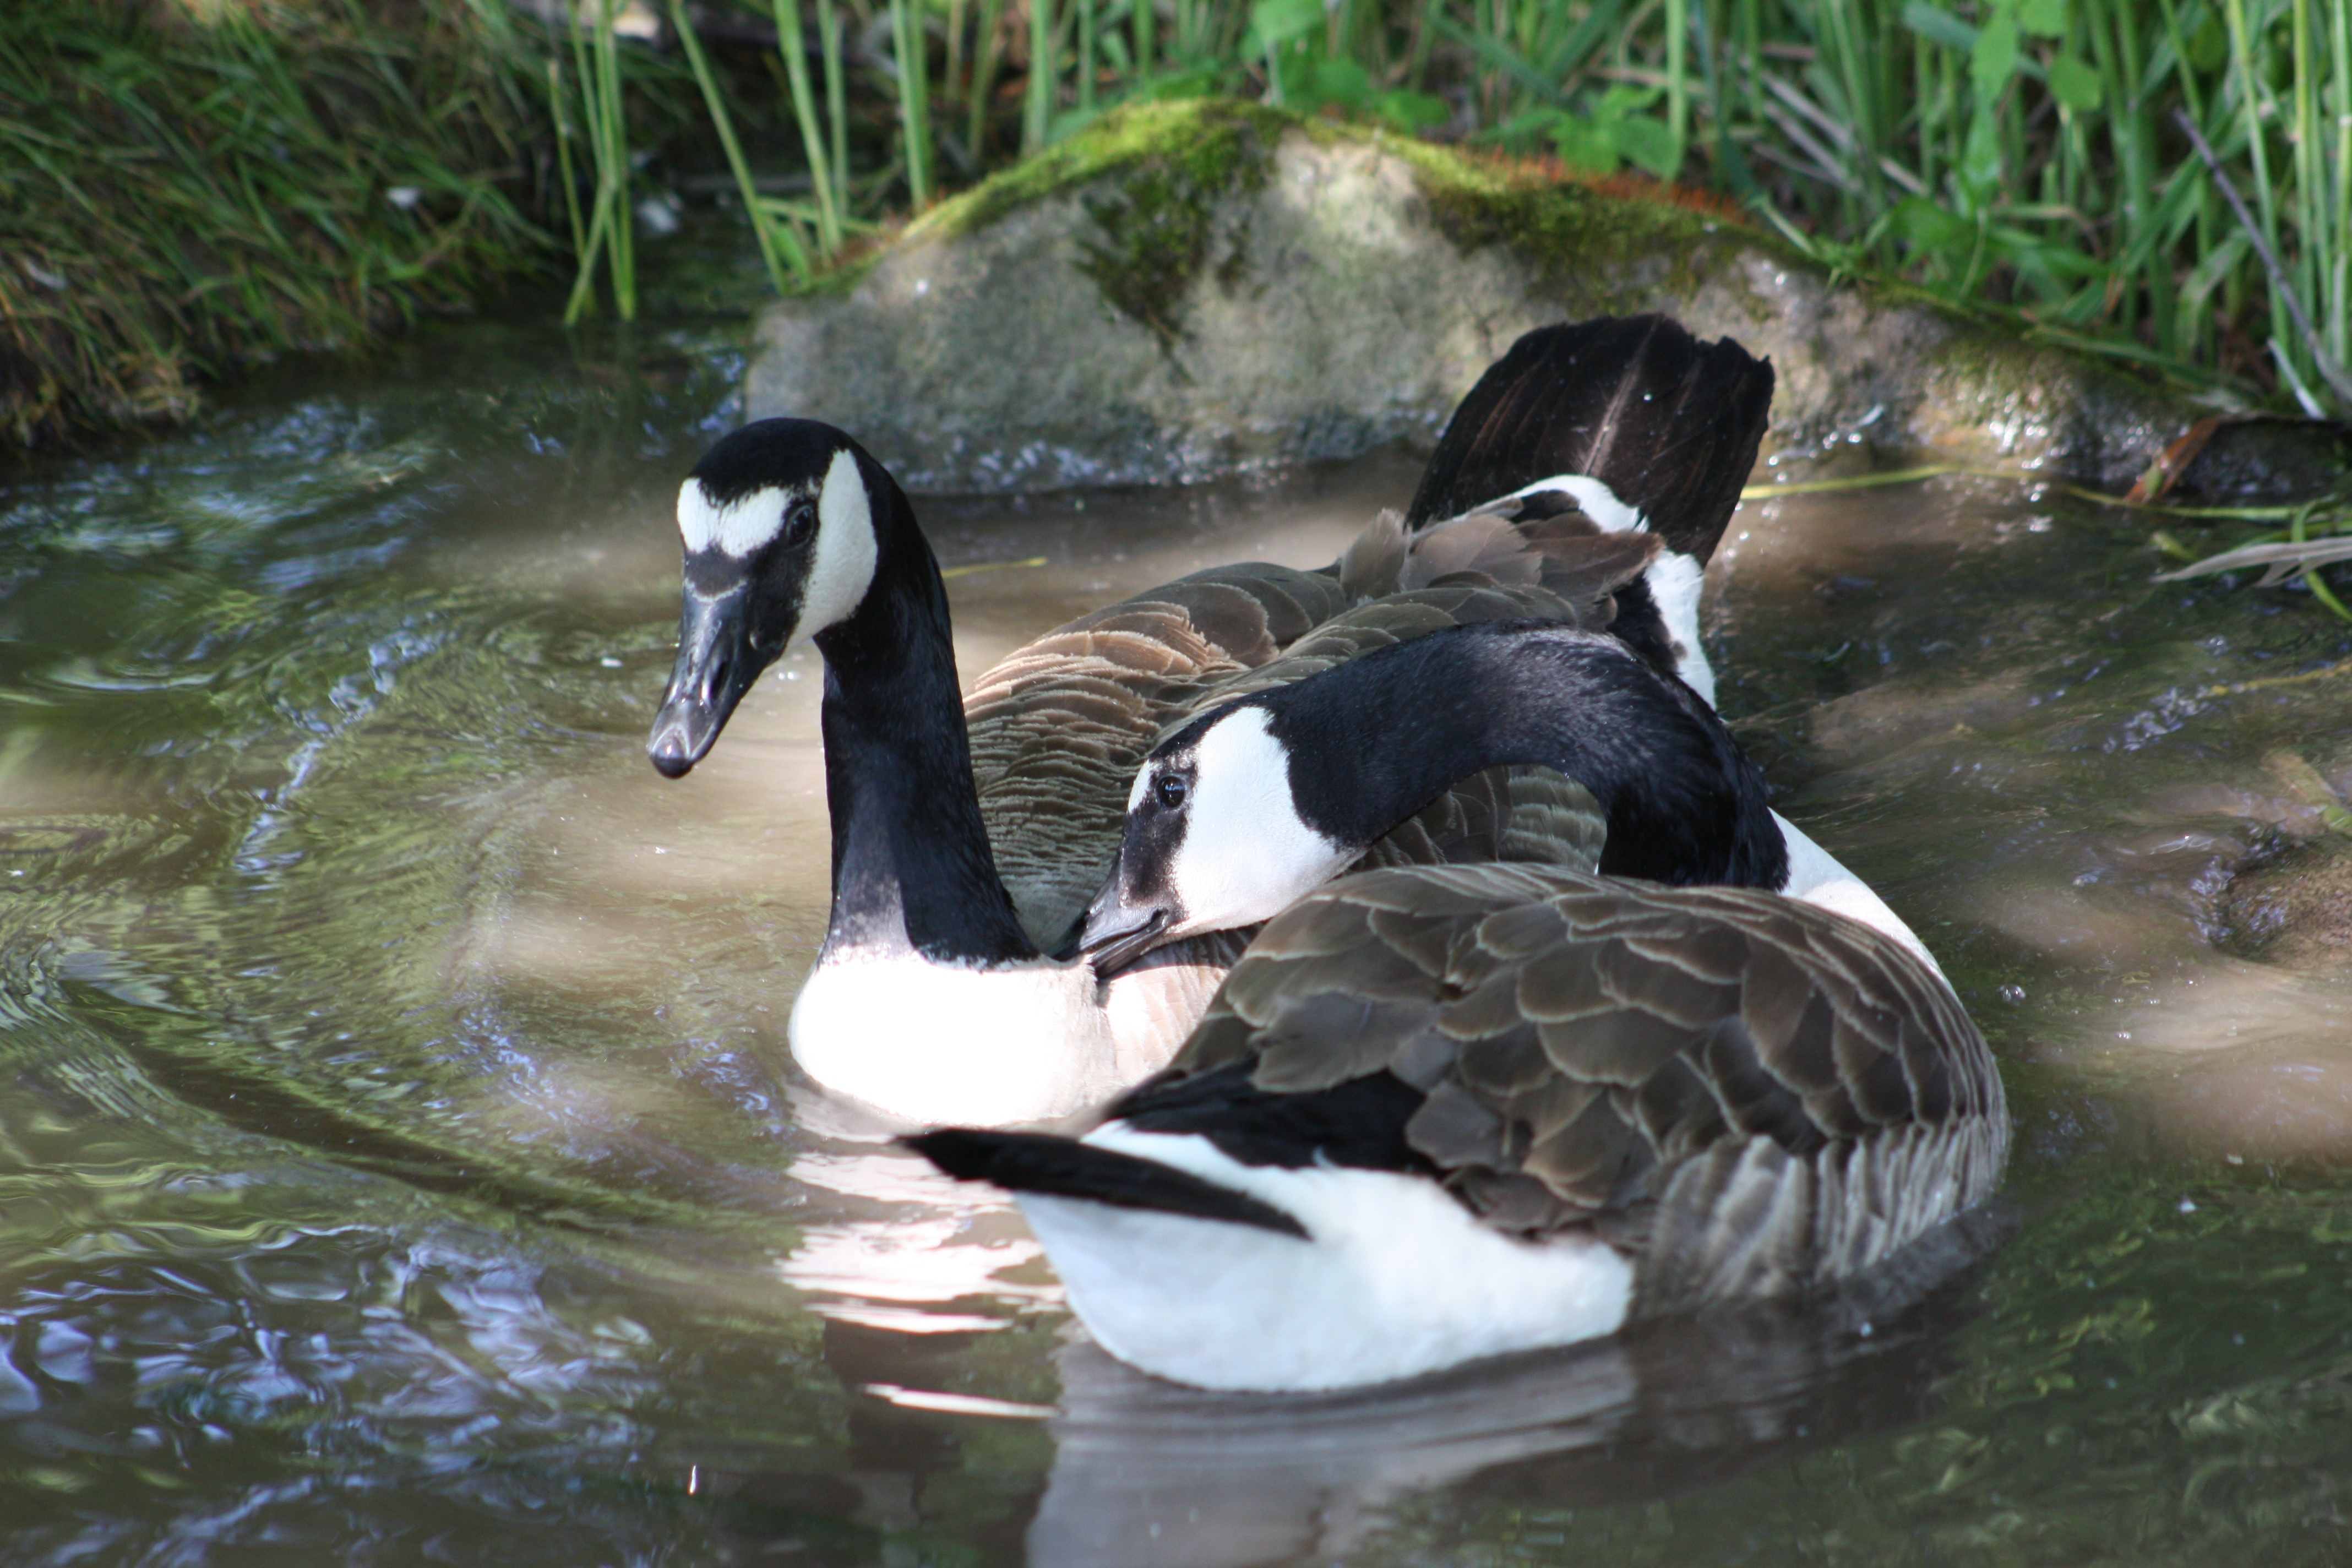 141803 download wallpaper Animals, Ducks, To Swim, Swim, Lake, Pond screensavers and pictures for free